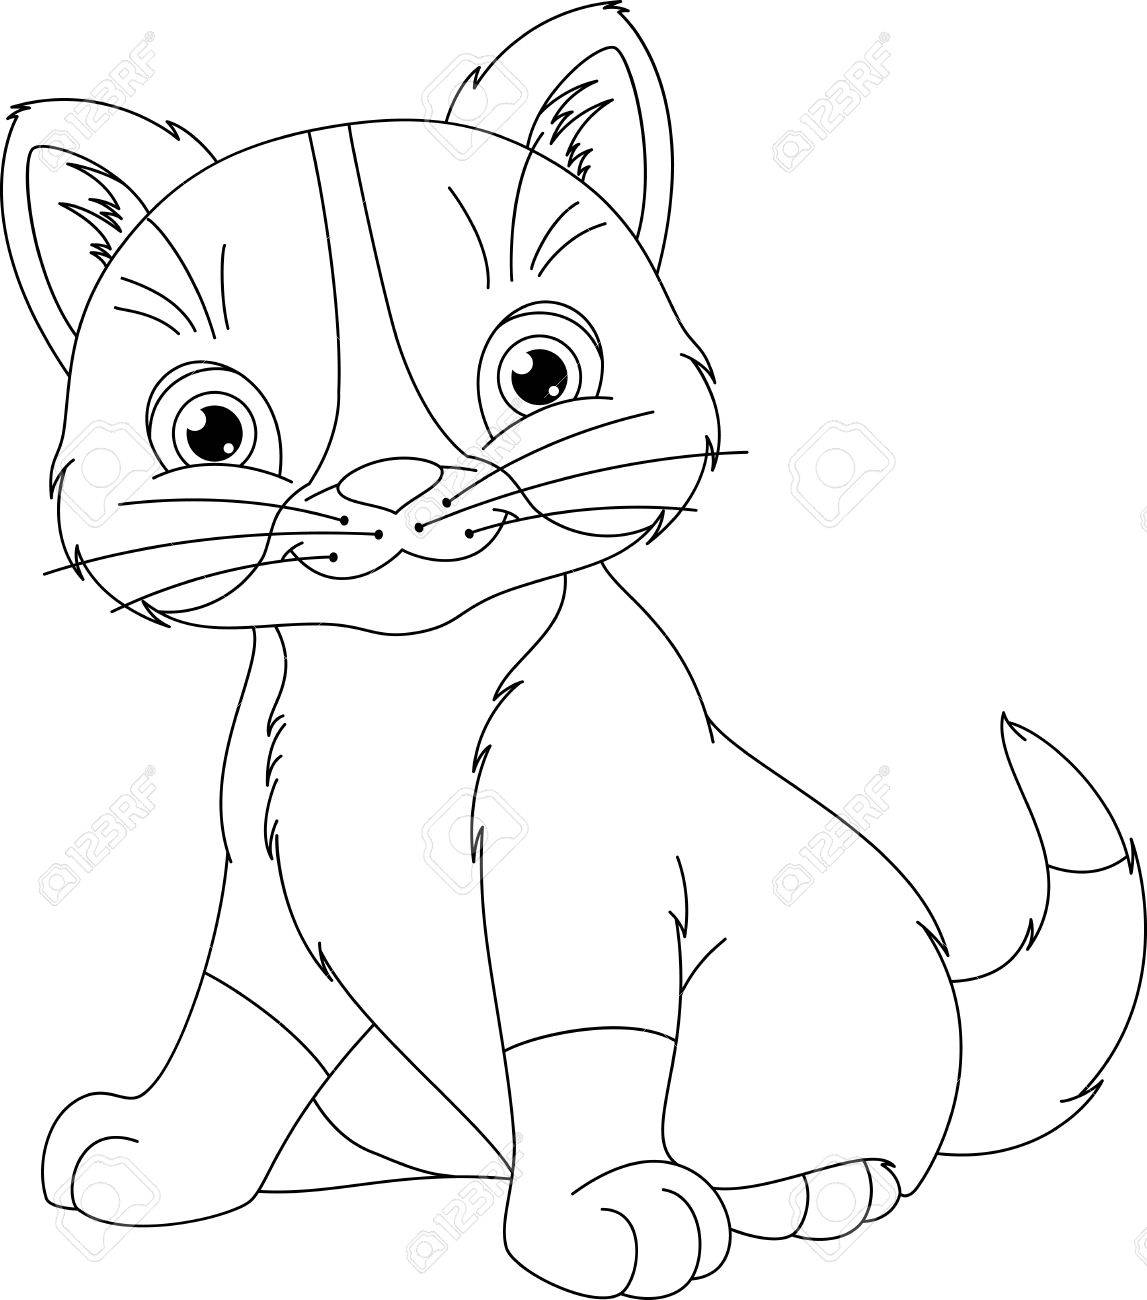 Kitten Coloring Page Royalty Free Cliparts Vectors And Stock